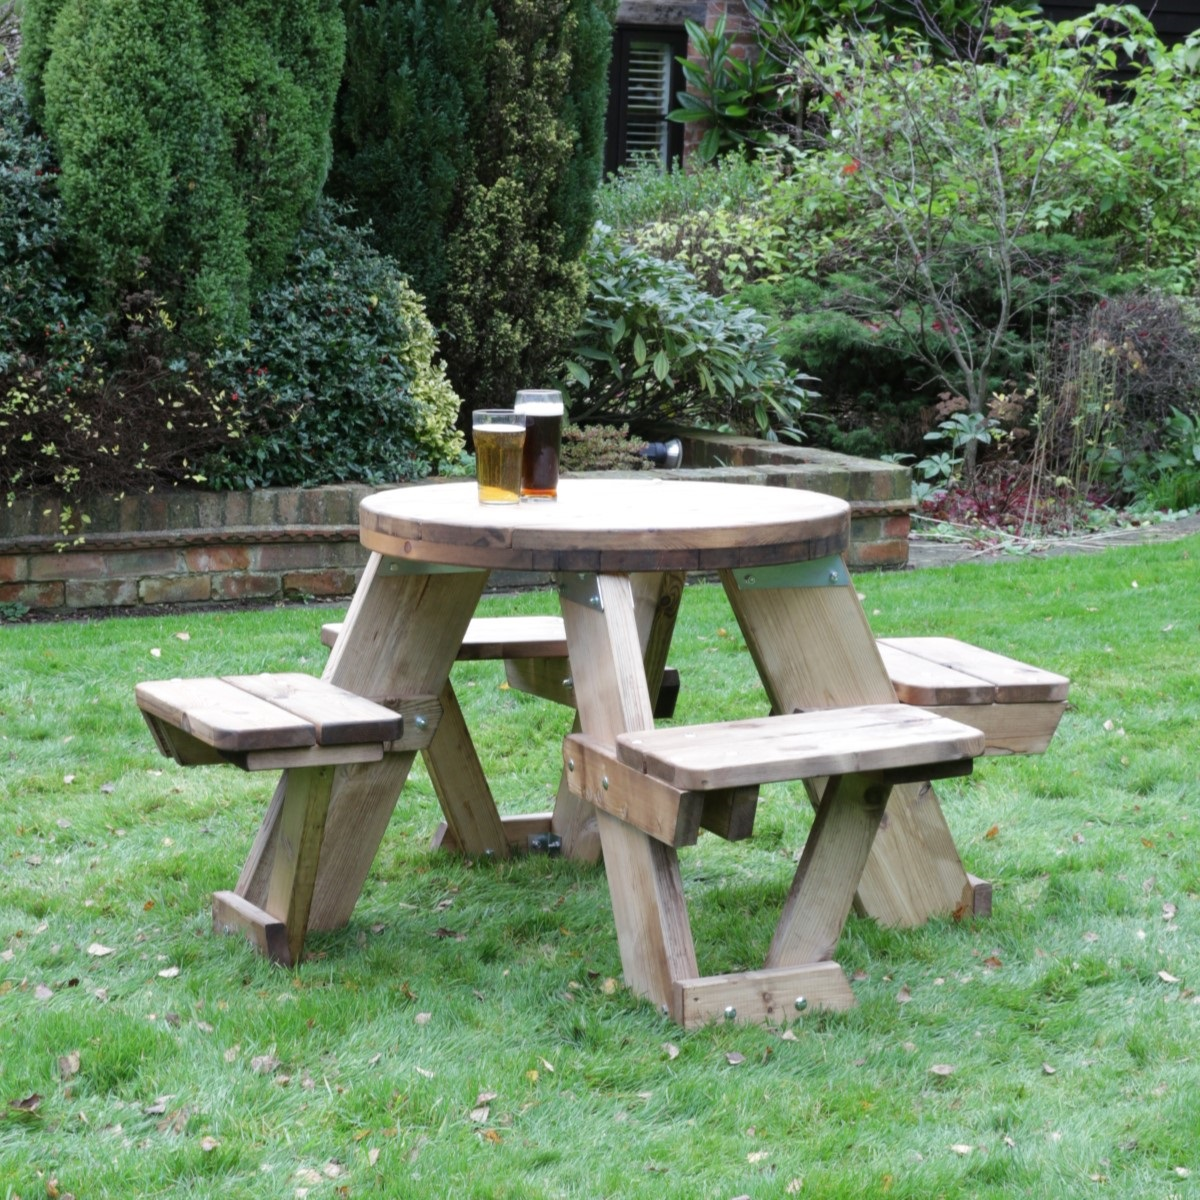 A round 4 seater wooden picnic table located on a lawn